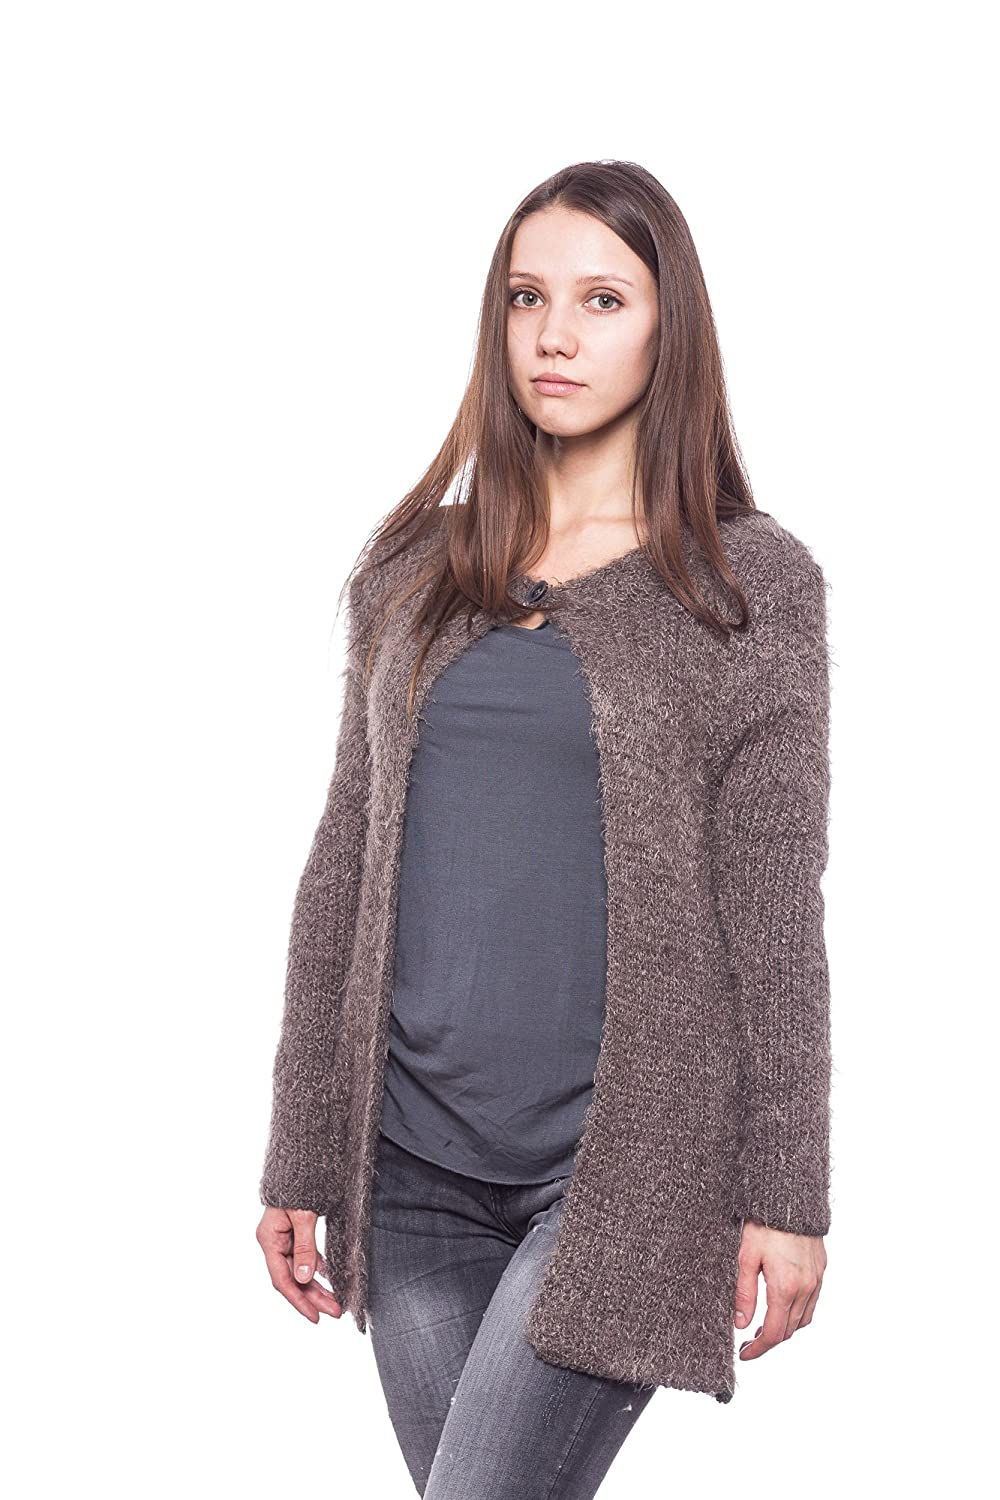 Abbino 83161 Cardigans Women - Made In Italy - 3 Colors - Womens Elegant Sale